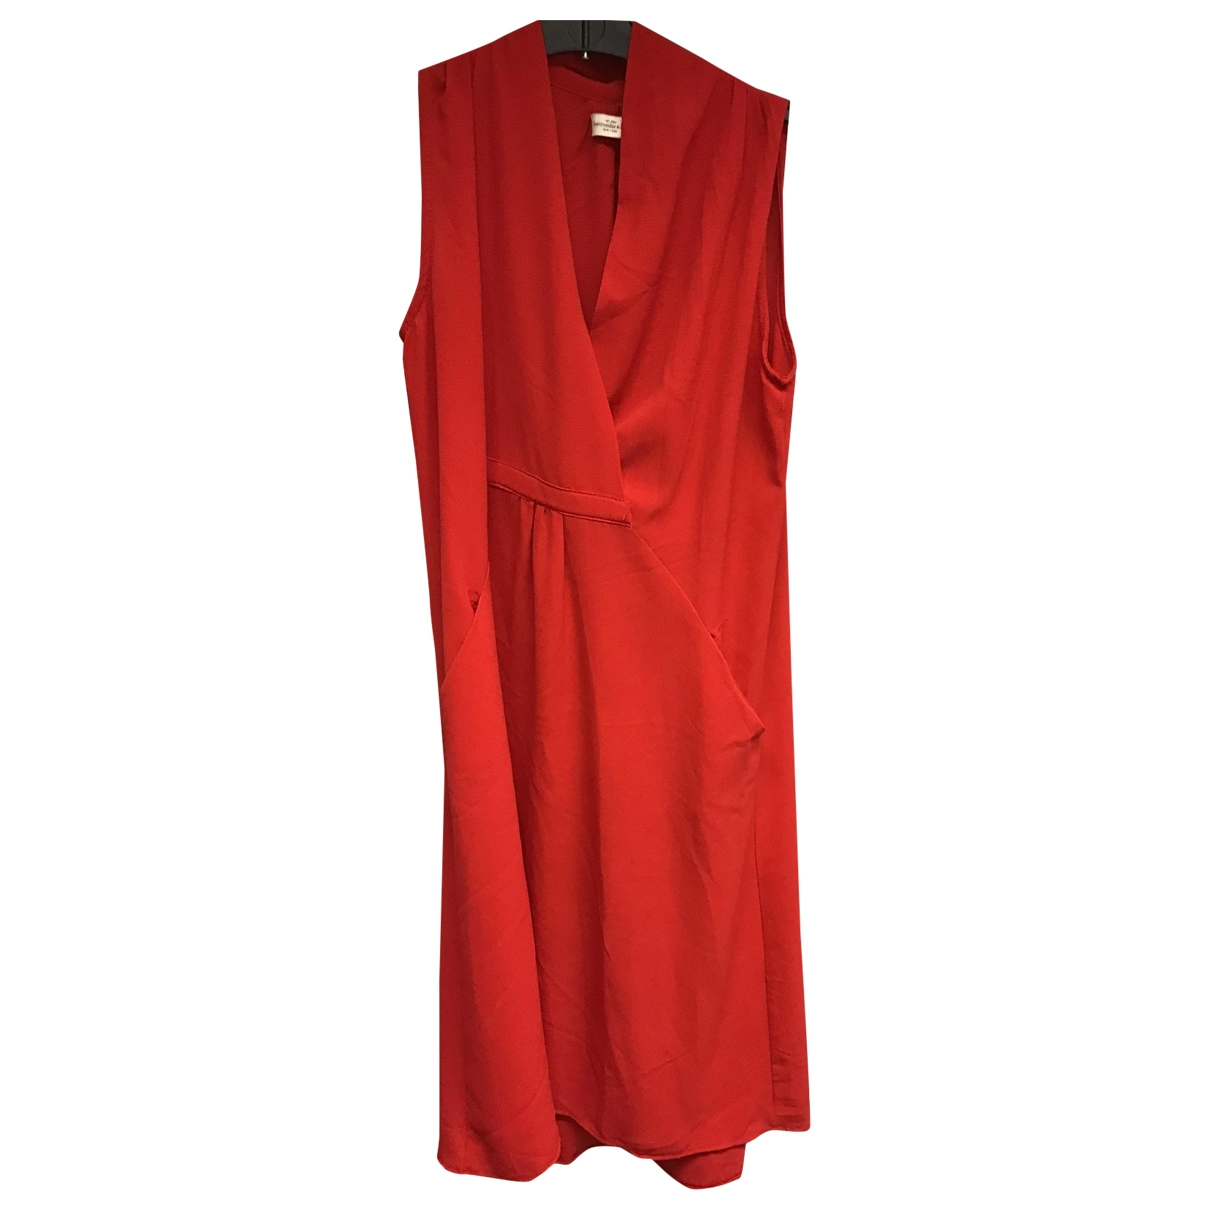 Abercrombie & Fitch - Robe   pour femme - rouge